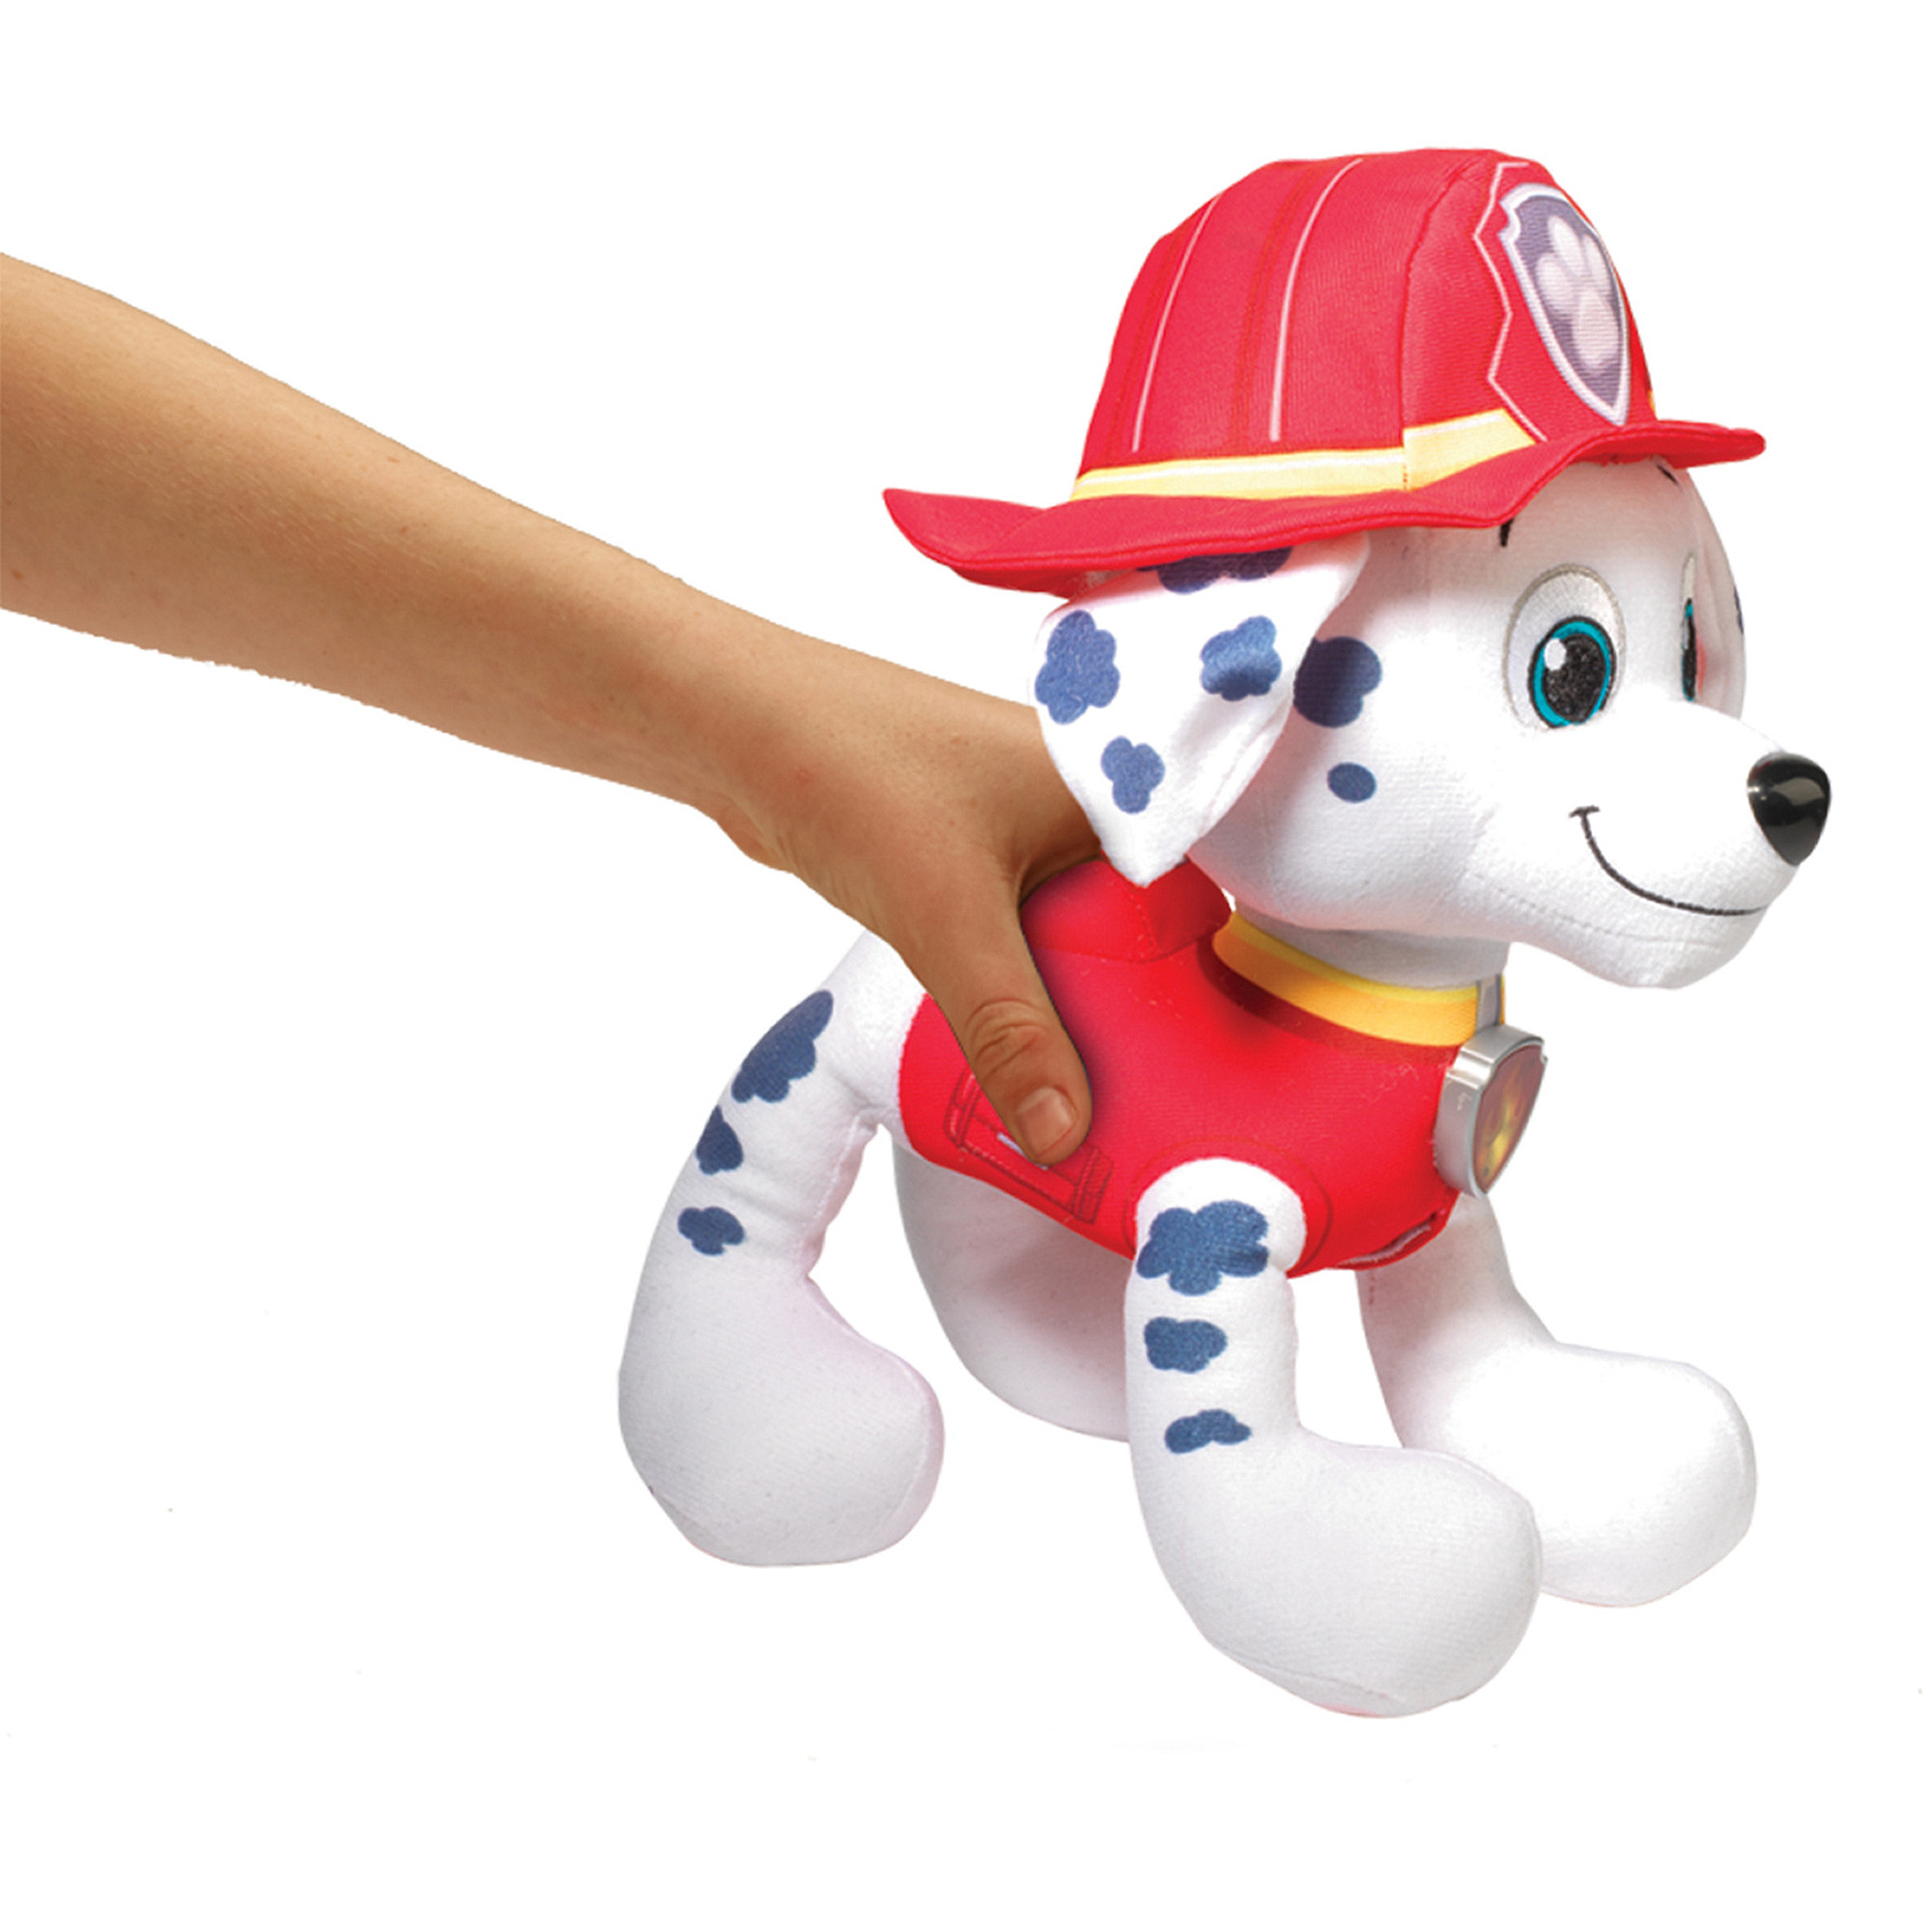 Paw Patrol- Deluxe Lights and Sounds Plush- Real Talking Marshall